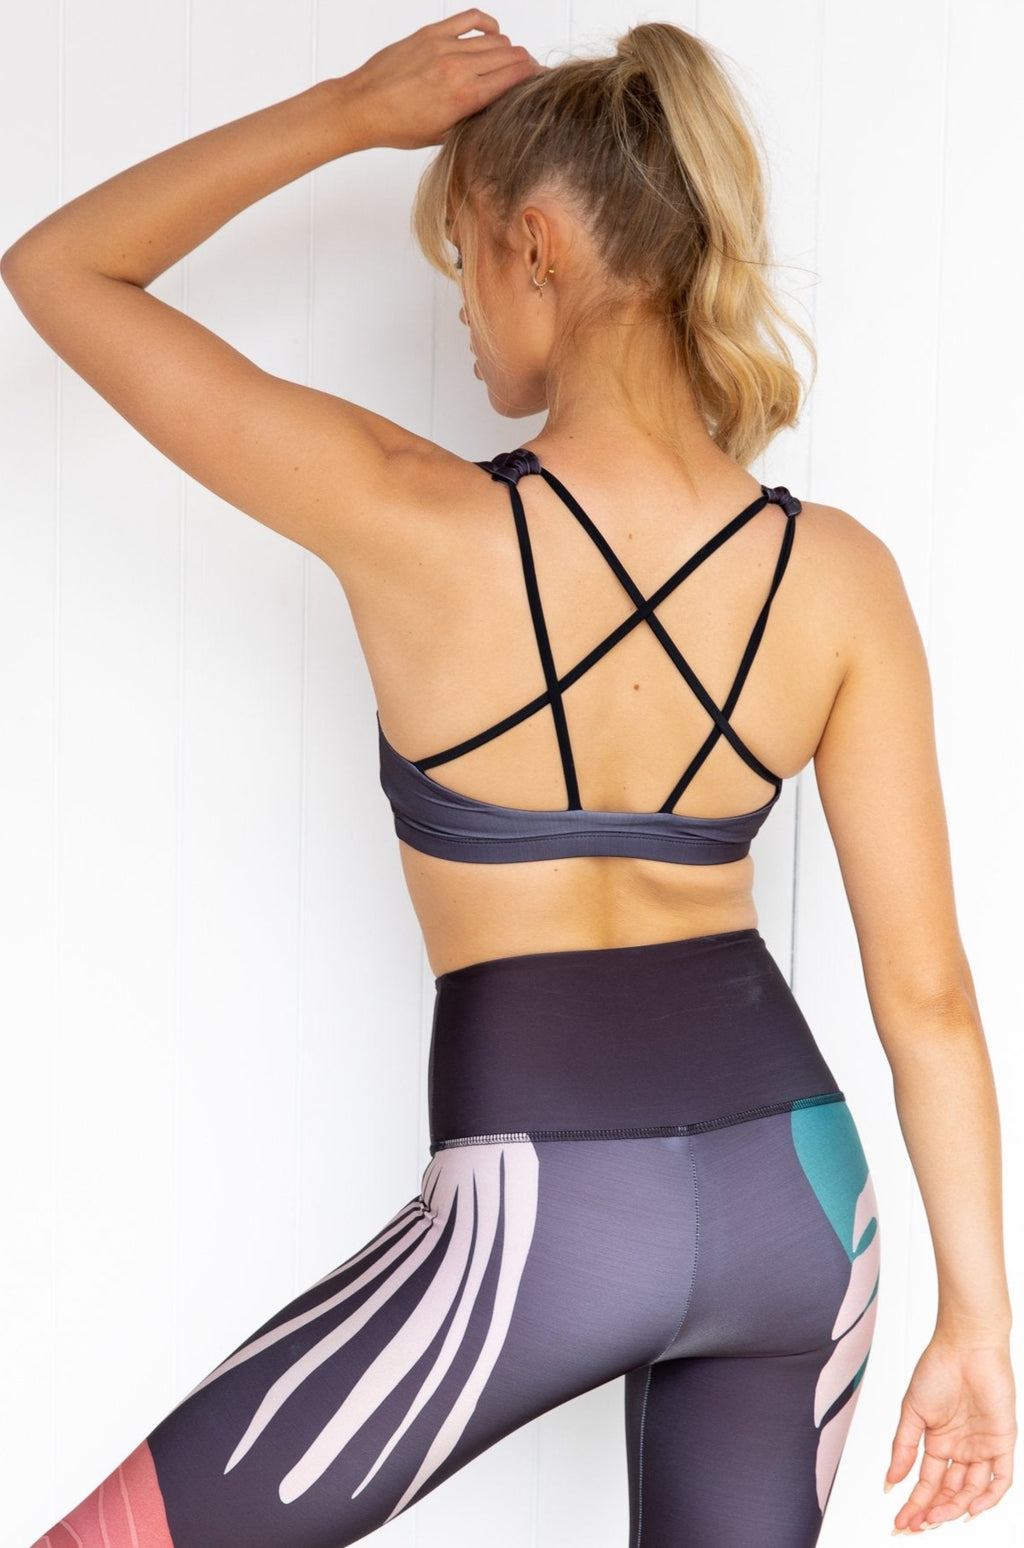 Graphic Mudra Bra - Midnight palm